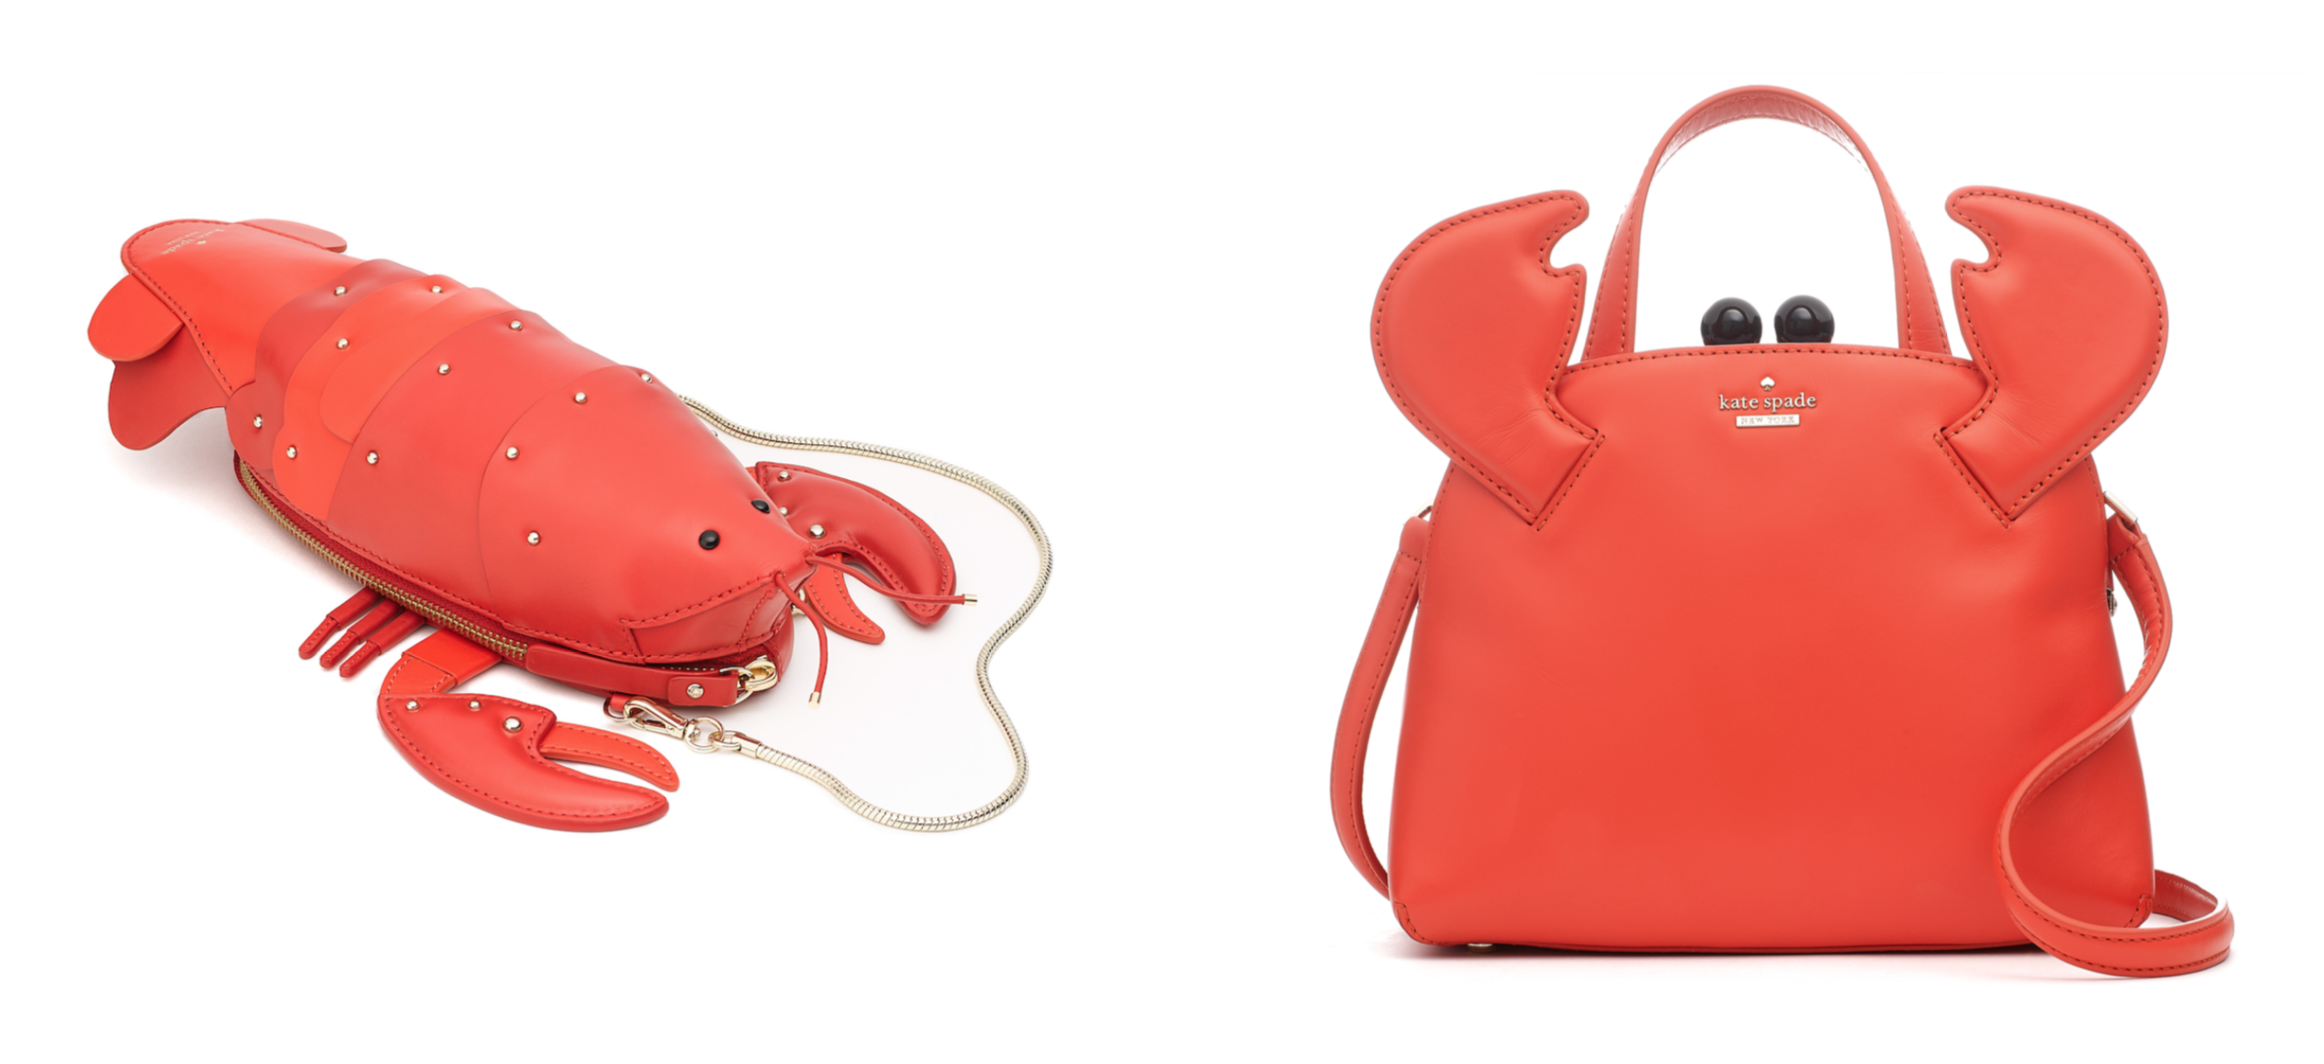 Lobster Crossbody And Crab Bag